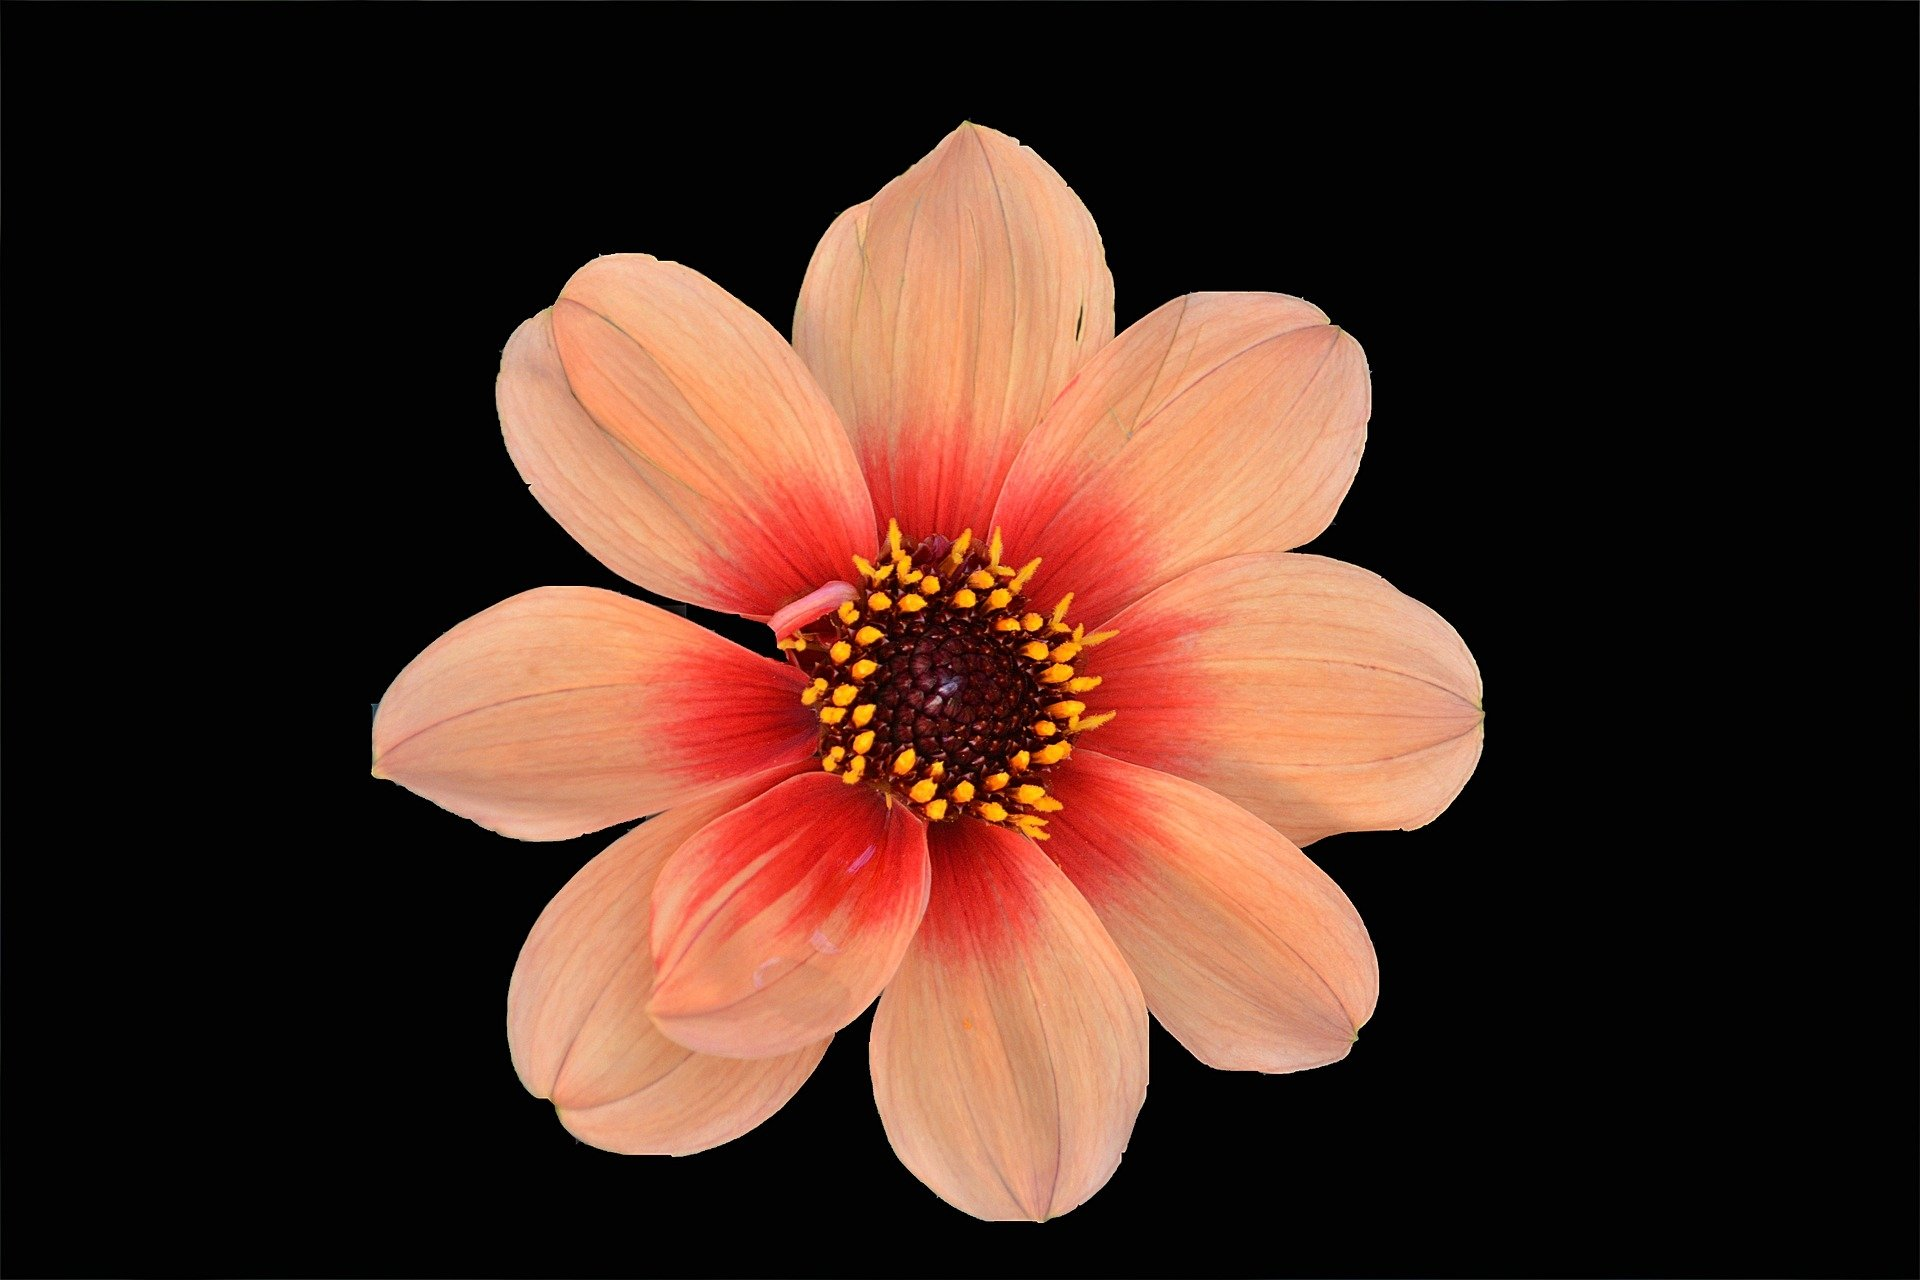 Coral Colored Flower Hd Wallpaper Background Image 1920x1280 Id 811477 Wallpaper Abyss